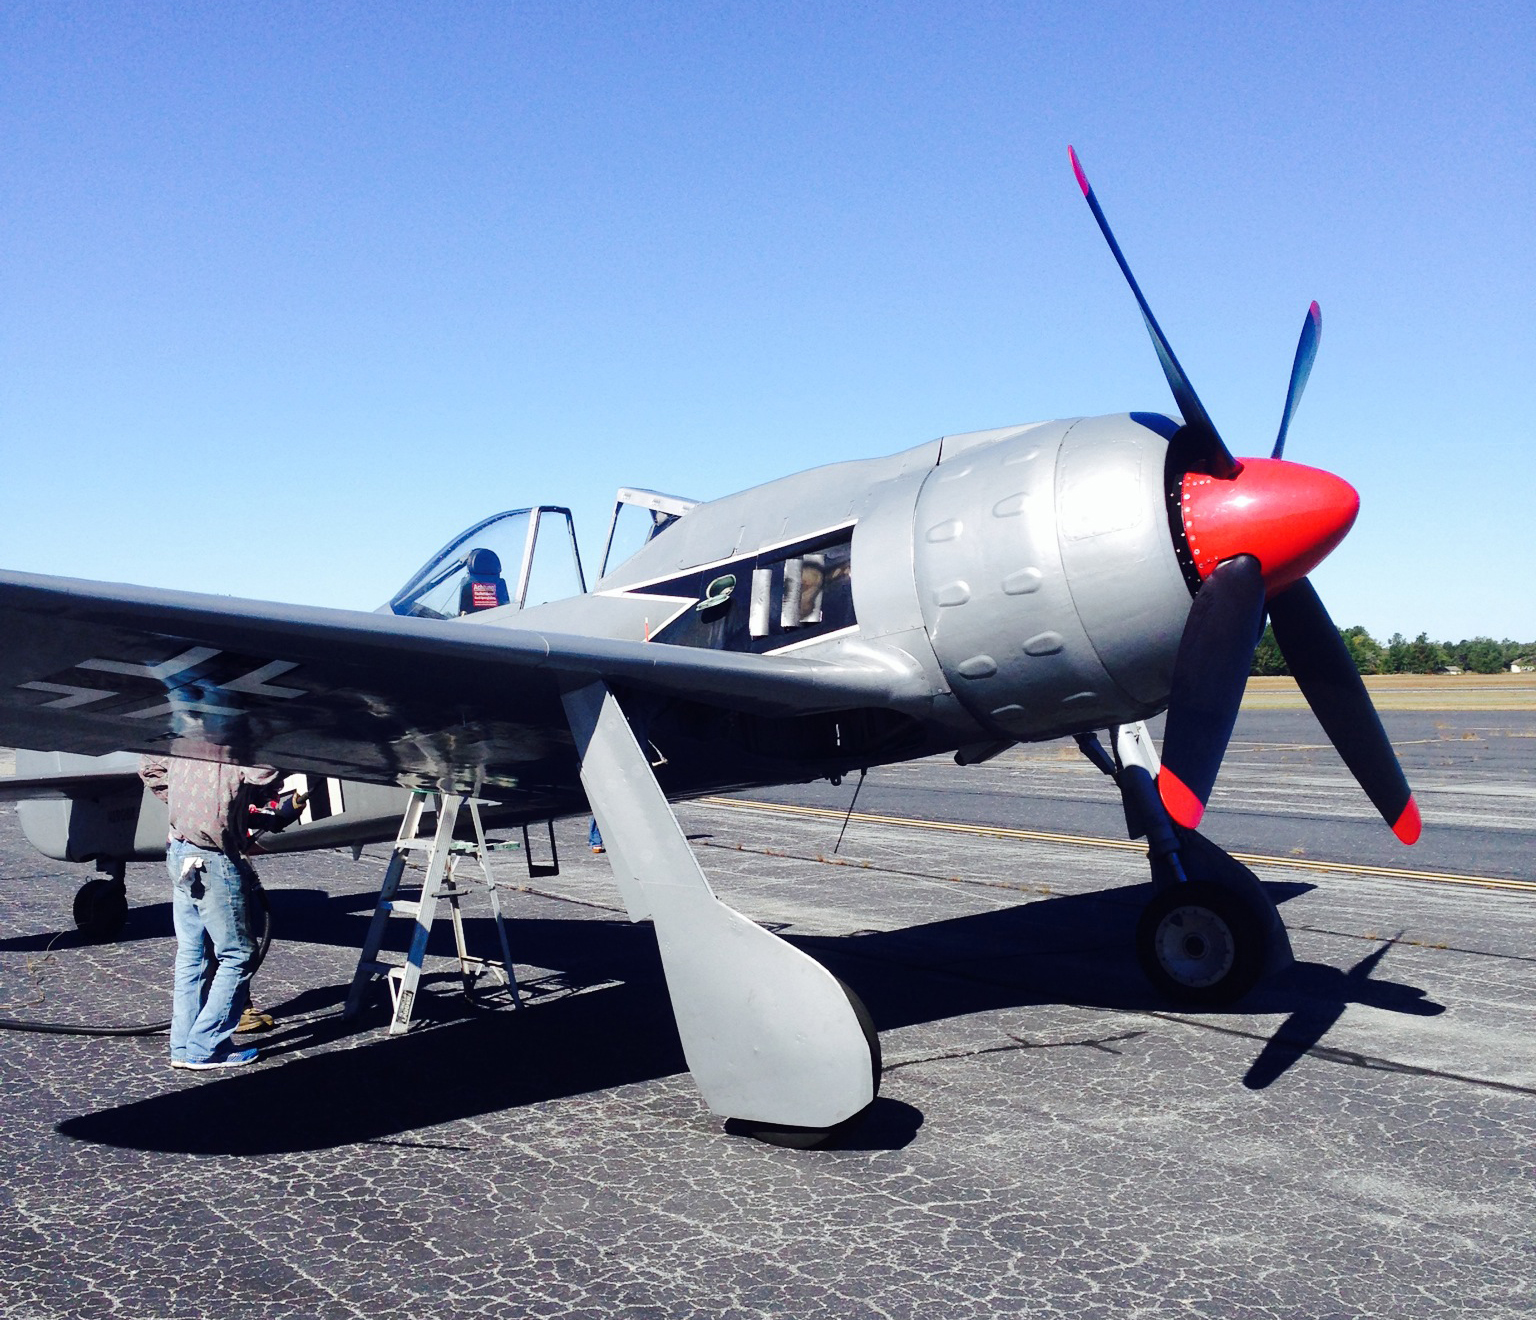 A recent photograph of Jerry Yagen's newly acquired FW-190A-8/N. Note the four-bladed propeller, dome and unusual, dimpled engine cowling. All of these are from a Tu-2 medium bomber. (photo via Mike Spalding)